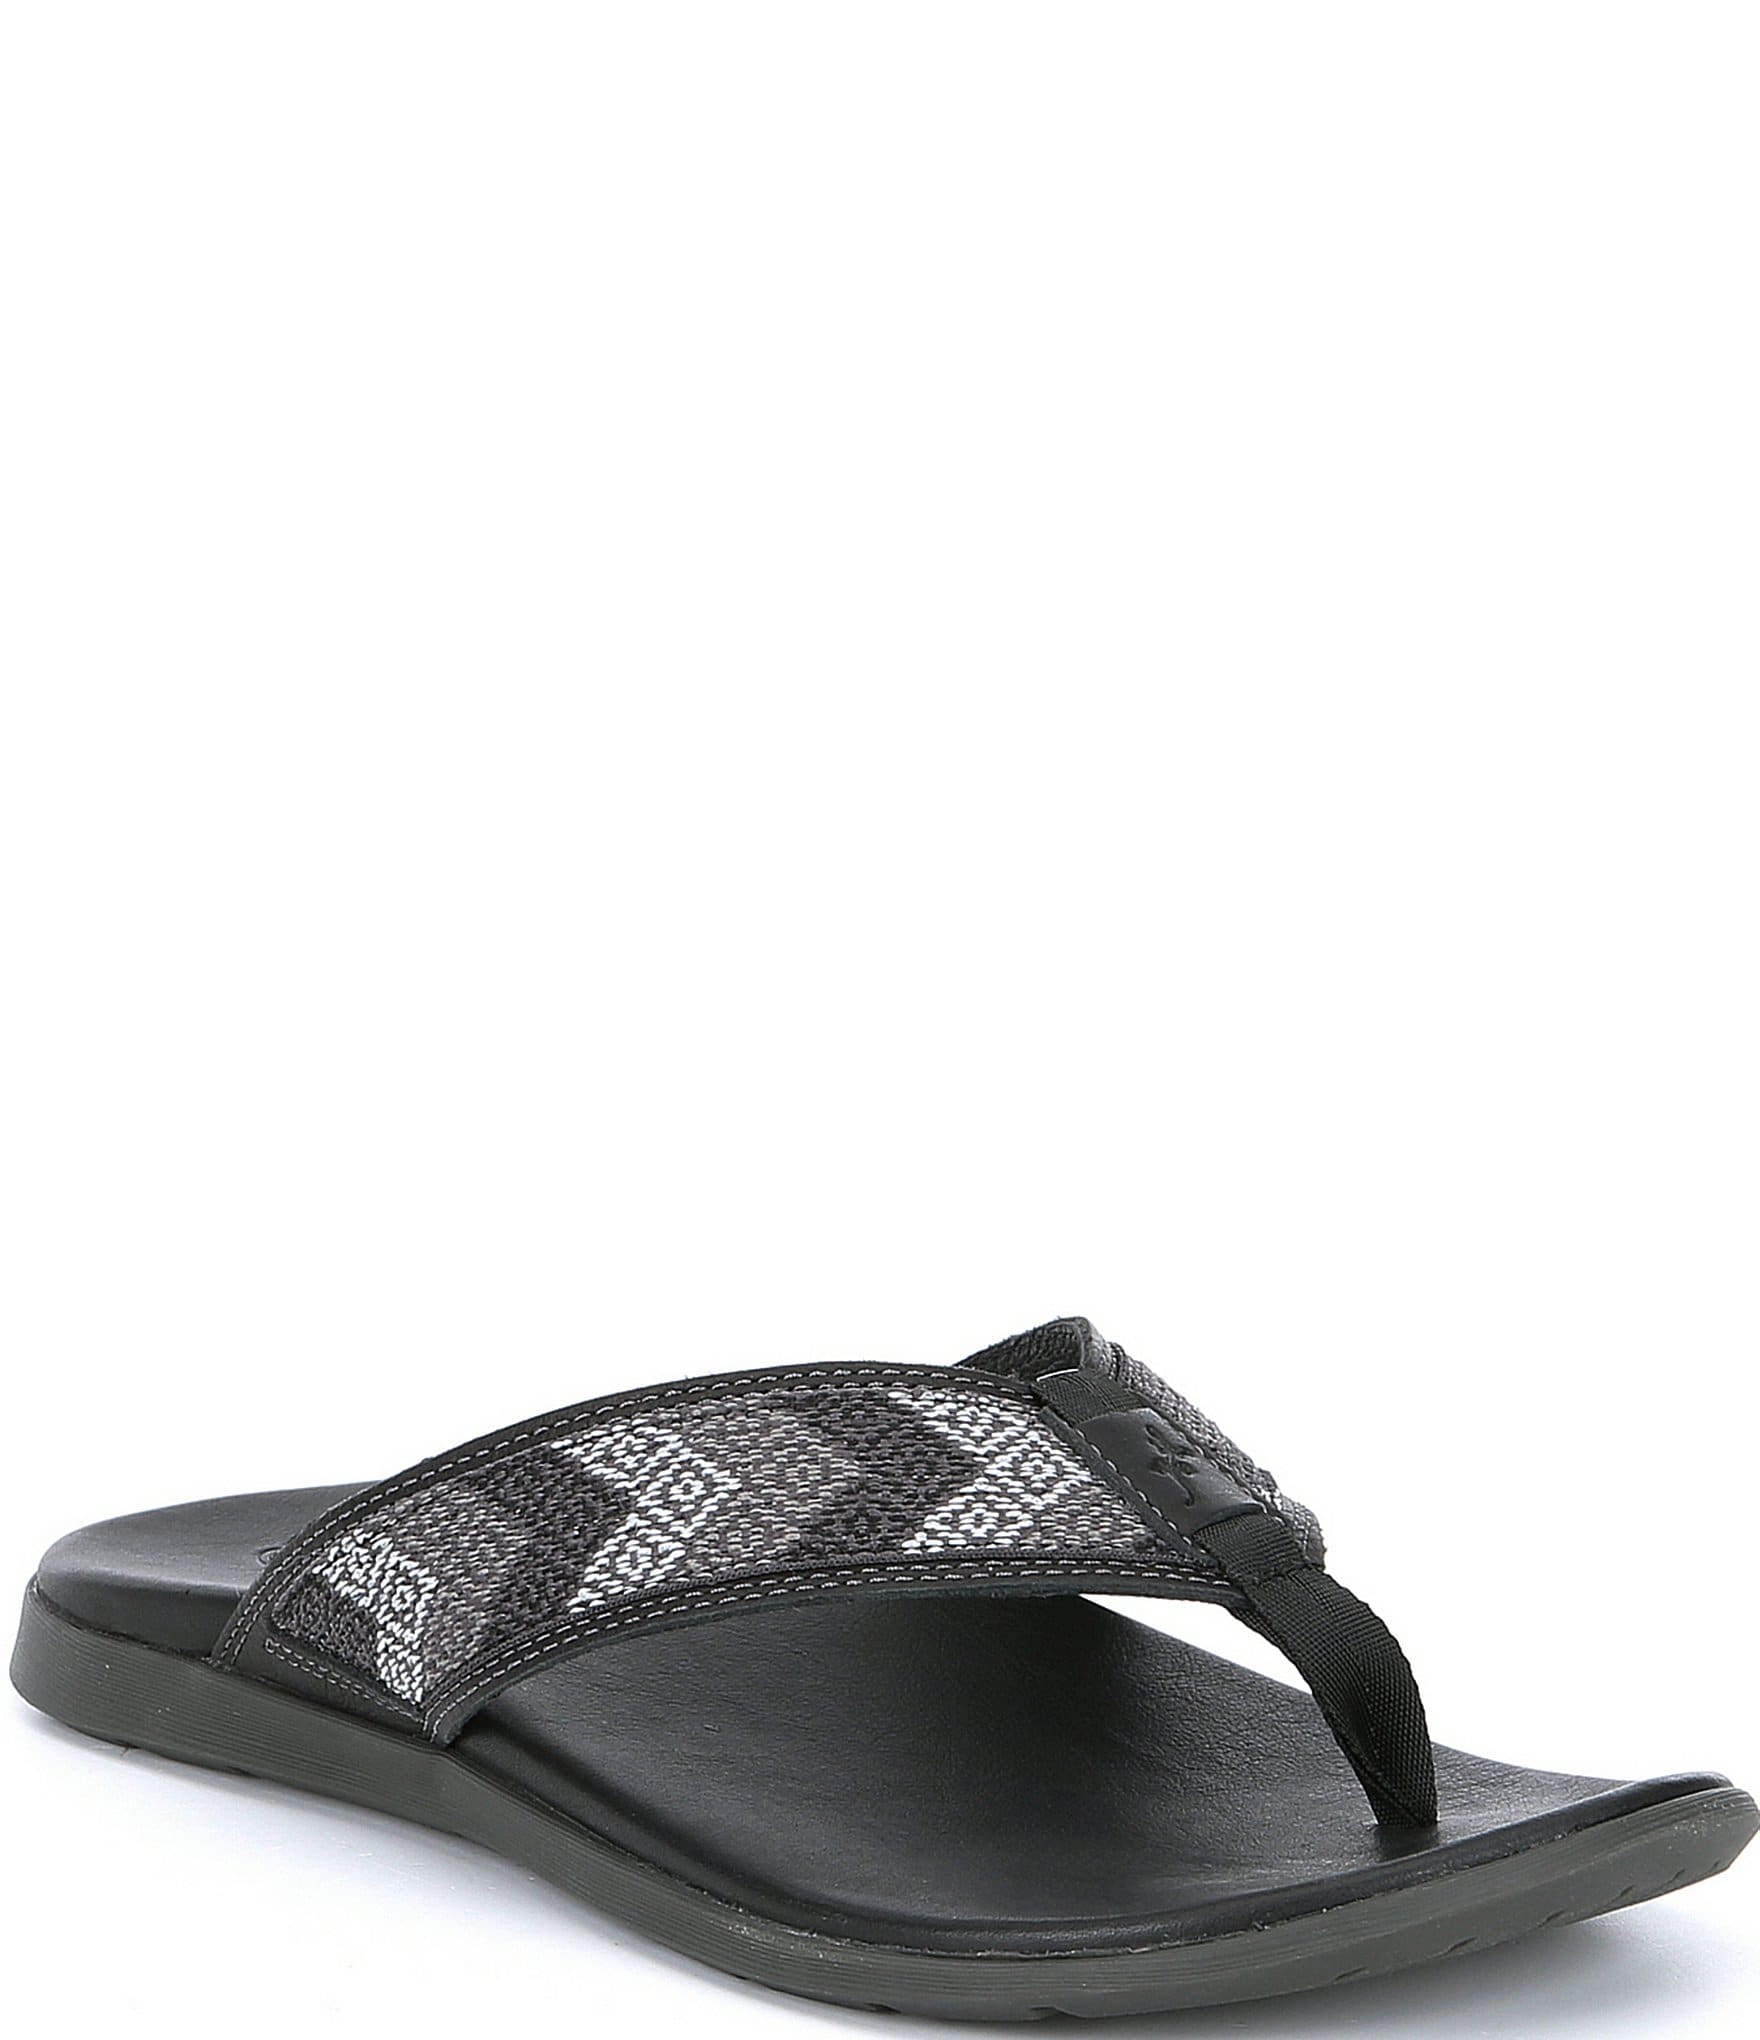 Chaco Men's Marshall Leather Flip Flop